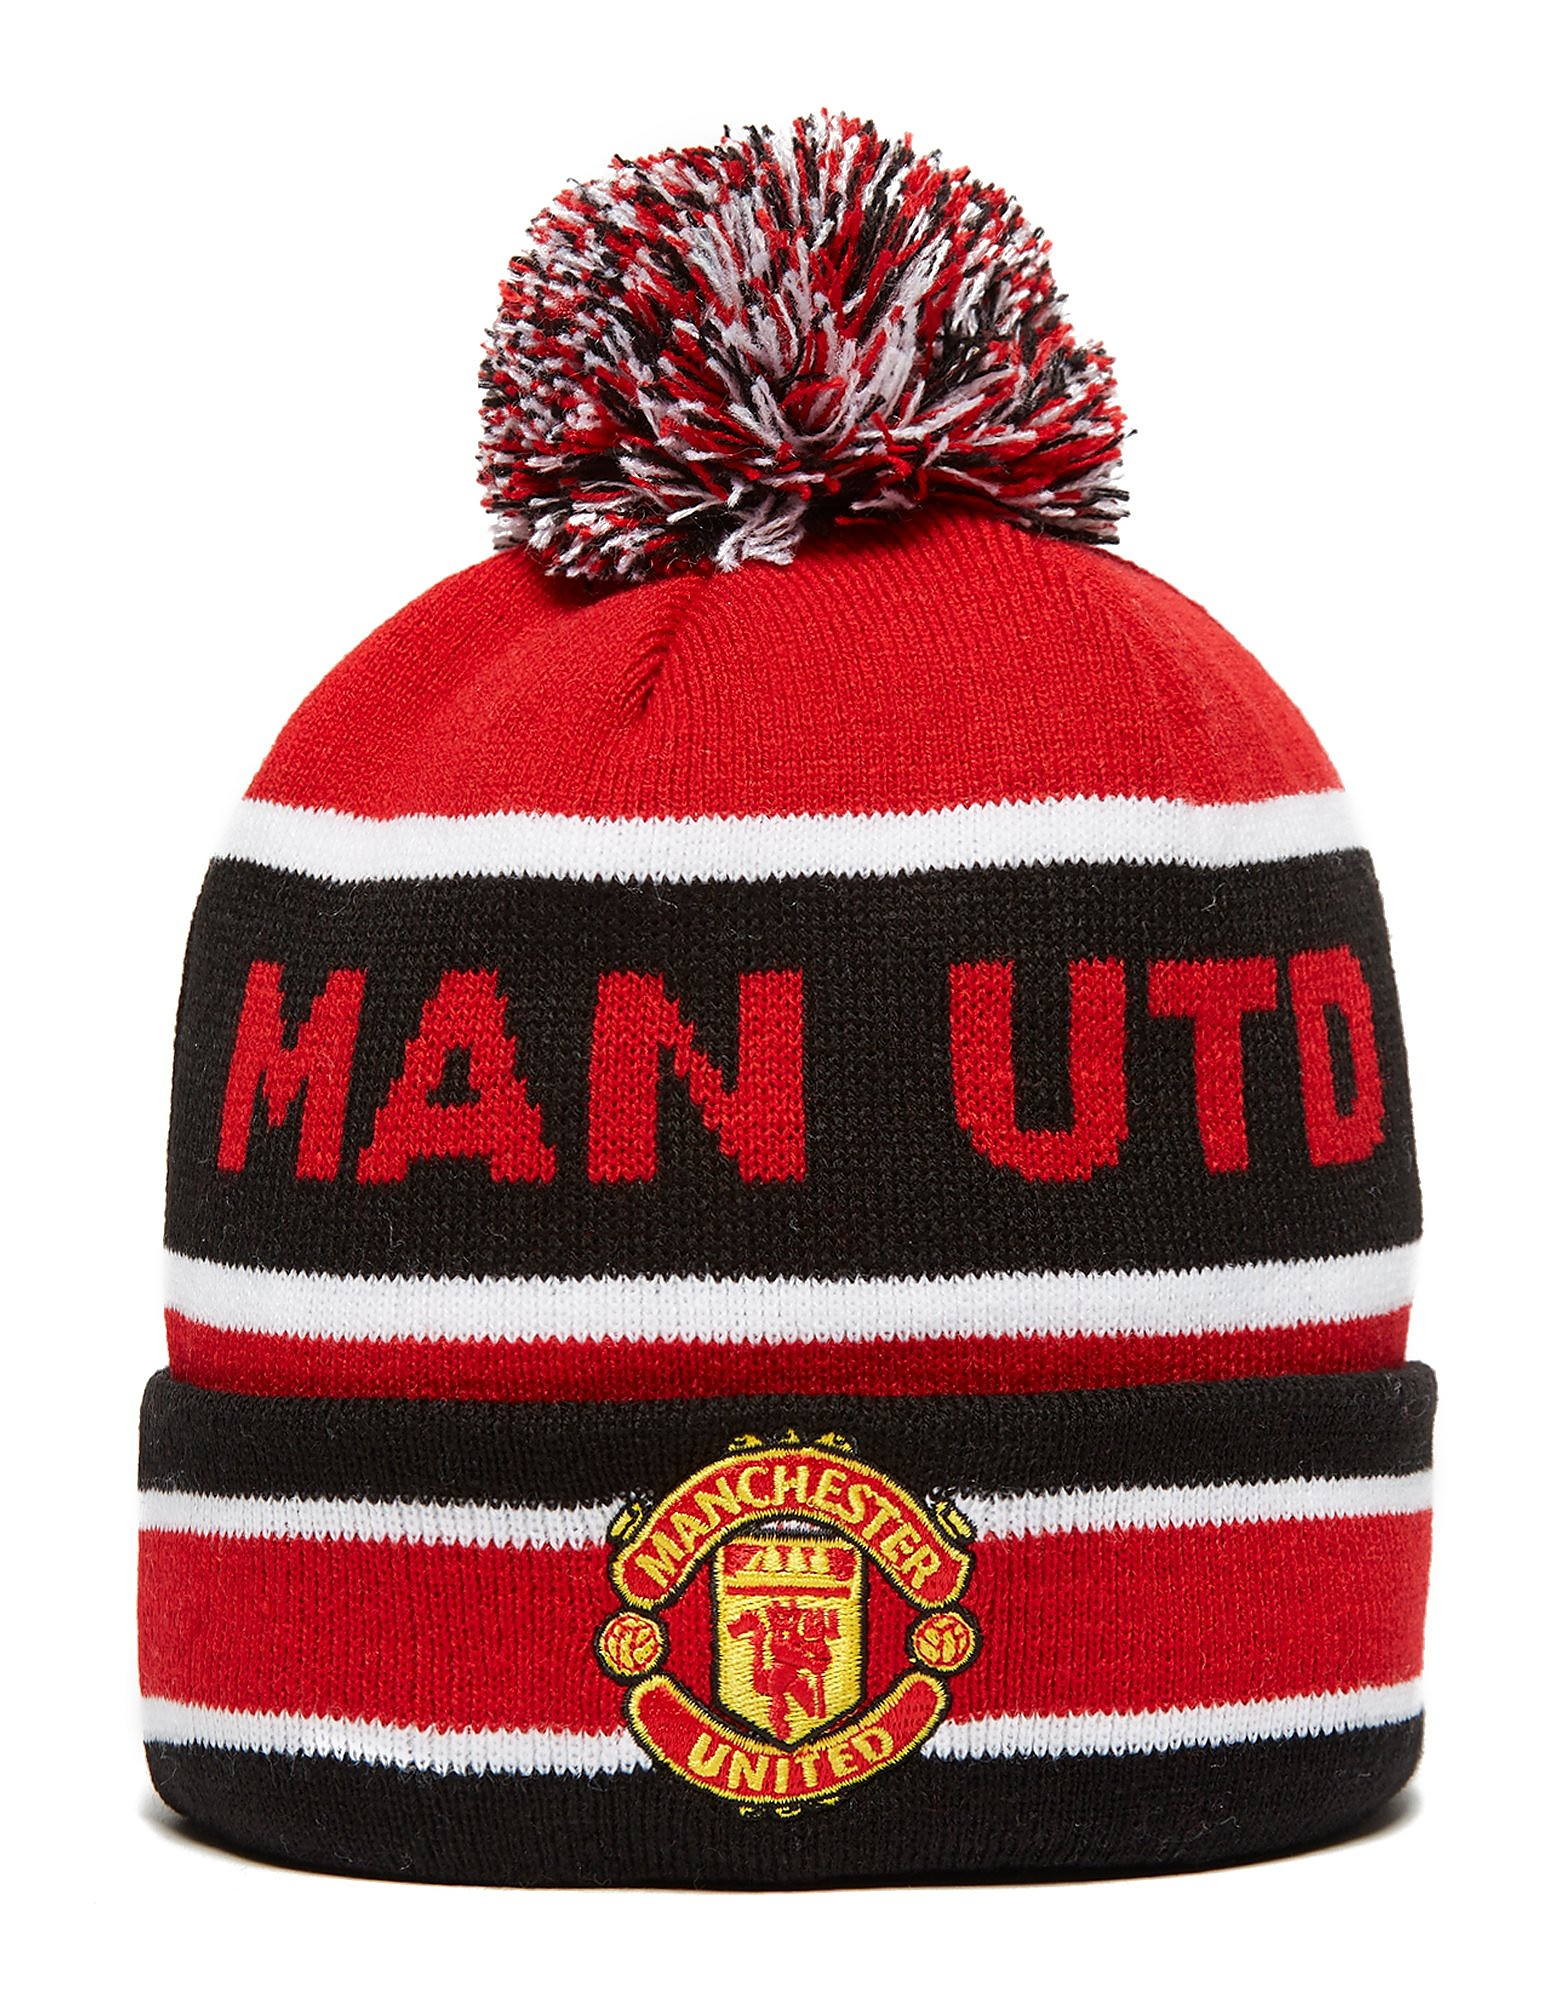 New Era Cappello pon pon in maglia Jake Manchester United